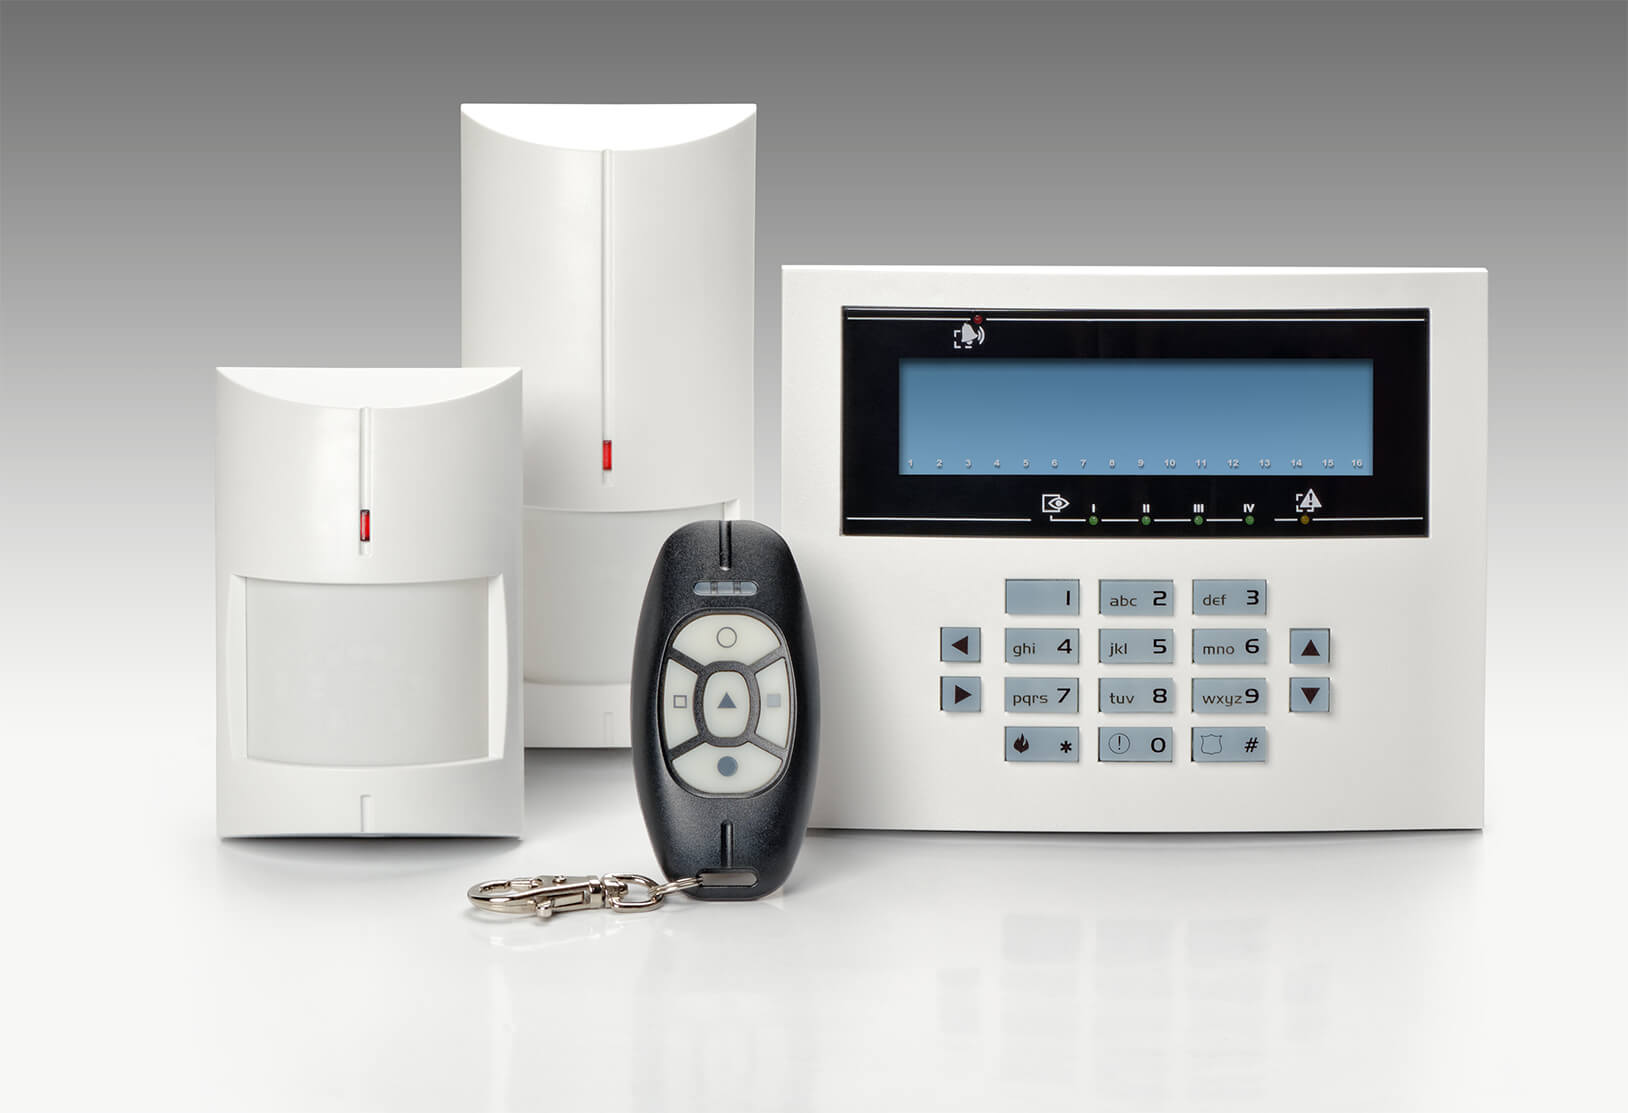 Burglar Alarms Repair in Finsbury EC1 - Local Finsbury EC1 alarm engineers.Call 02078872244 - See cost/price for burglar alarm repair and book your alarm engineer. No Hidden charges,No Contracts, Book as you need.Engineers on demand.All alarm makes repaired.Same day service ability.